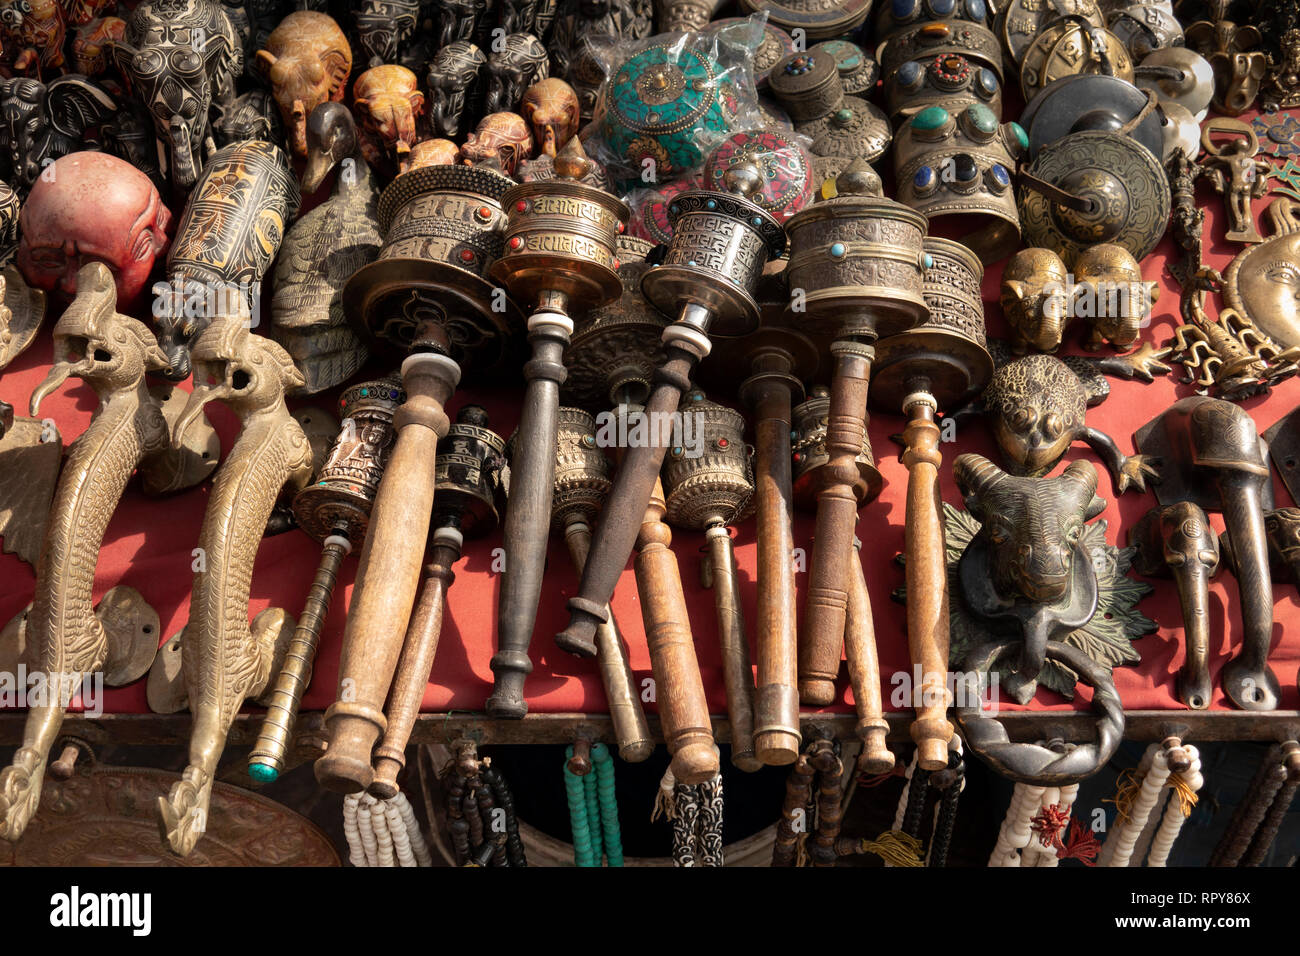 Buddhist Artifacts For Sale